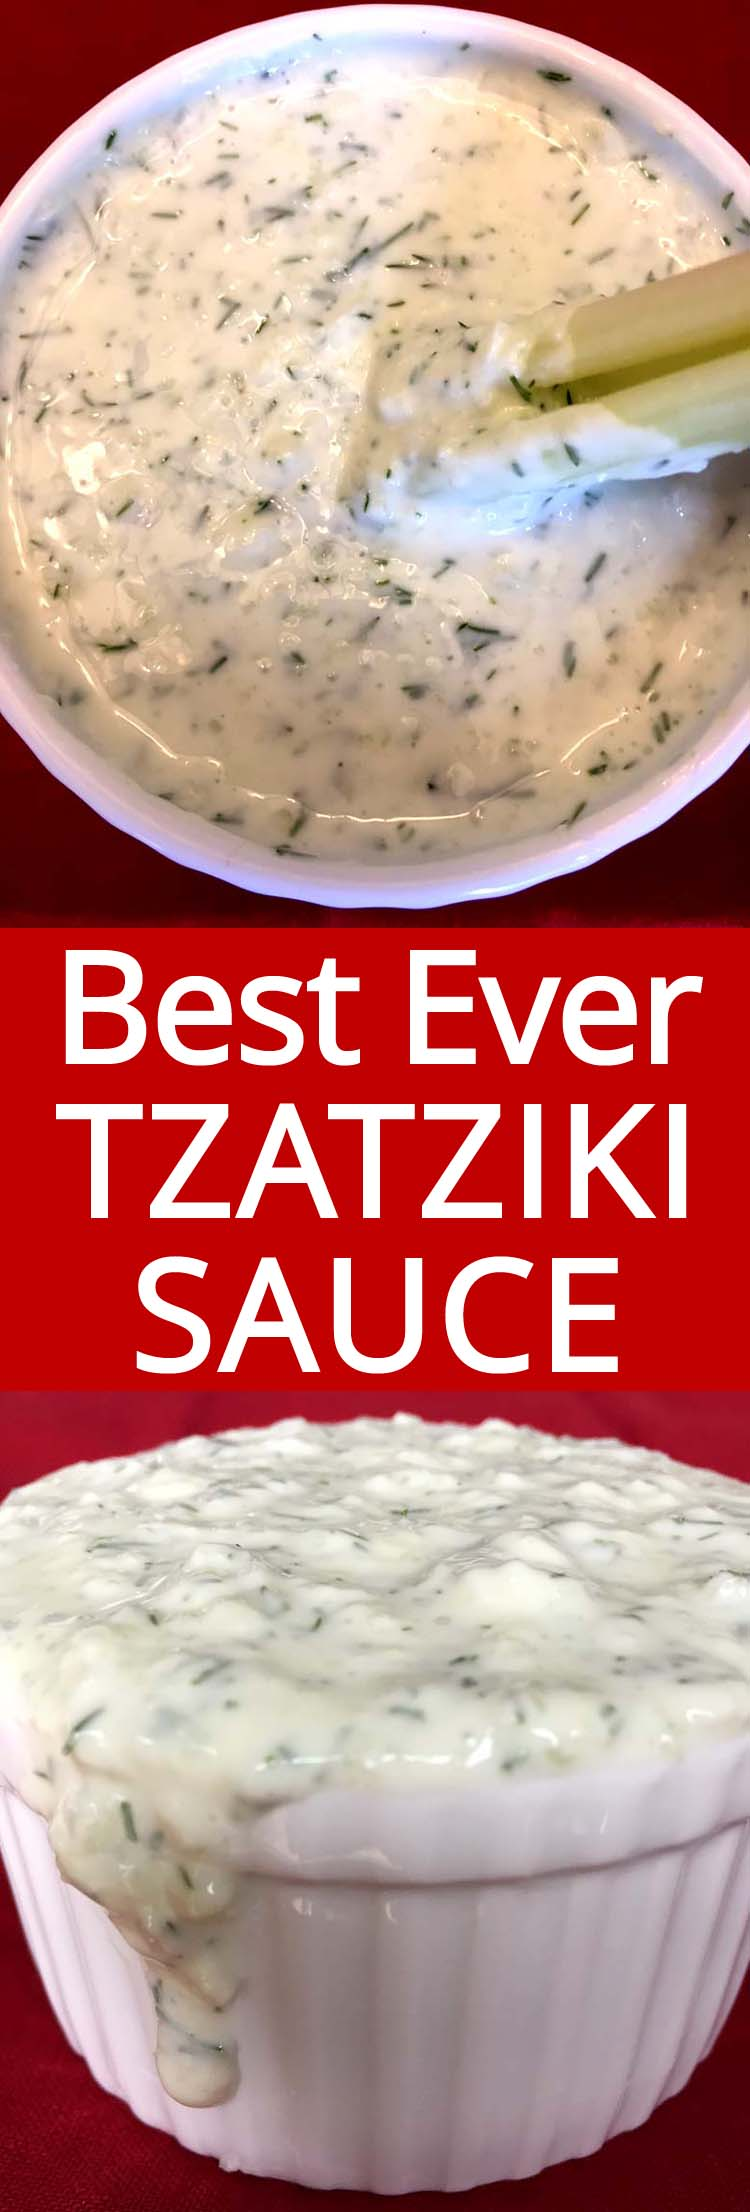 This homemade tzatziki sauce is amazing! Tastes like the one in a Greek restaurant!